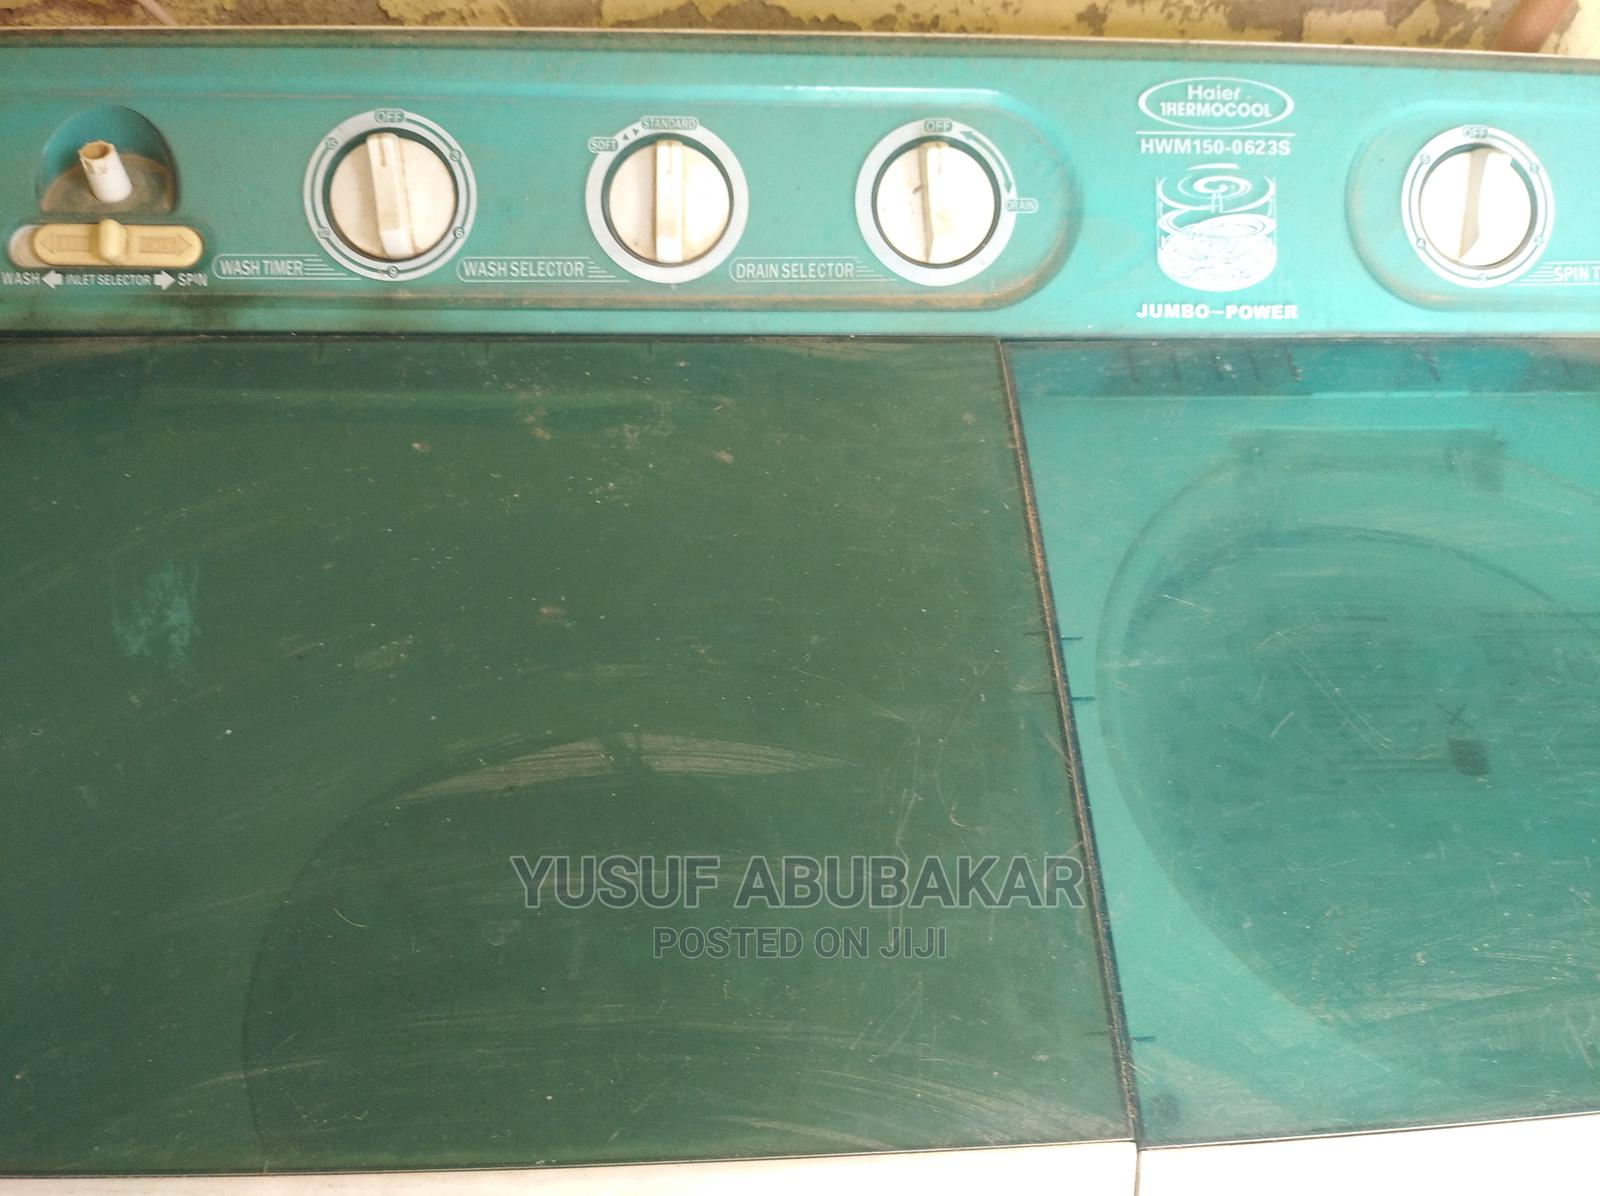 Hier Thermocool Washing Machine | Home Appliances for sale in Osogbo, Osun State, Nigeria